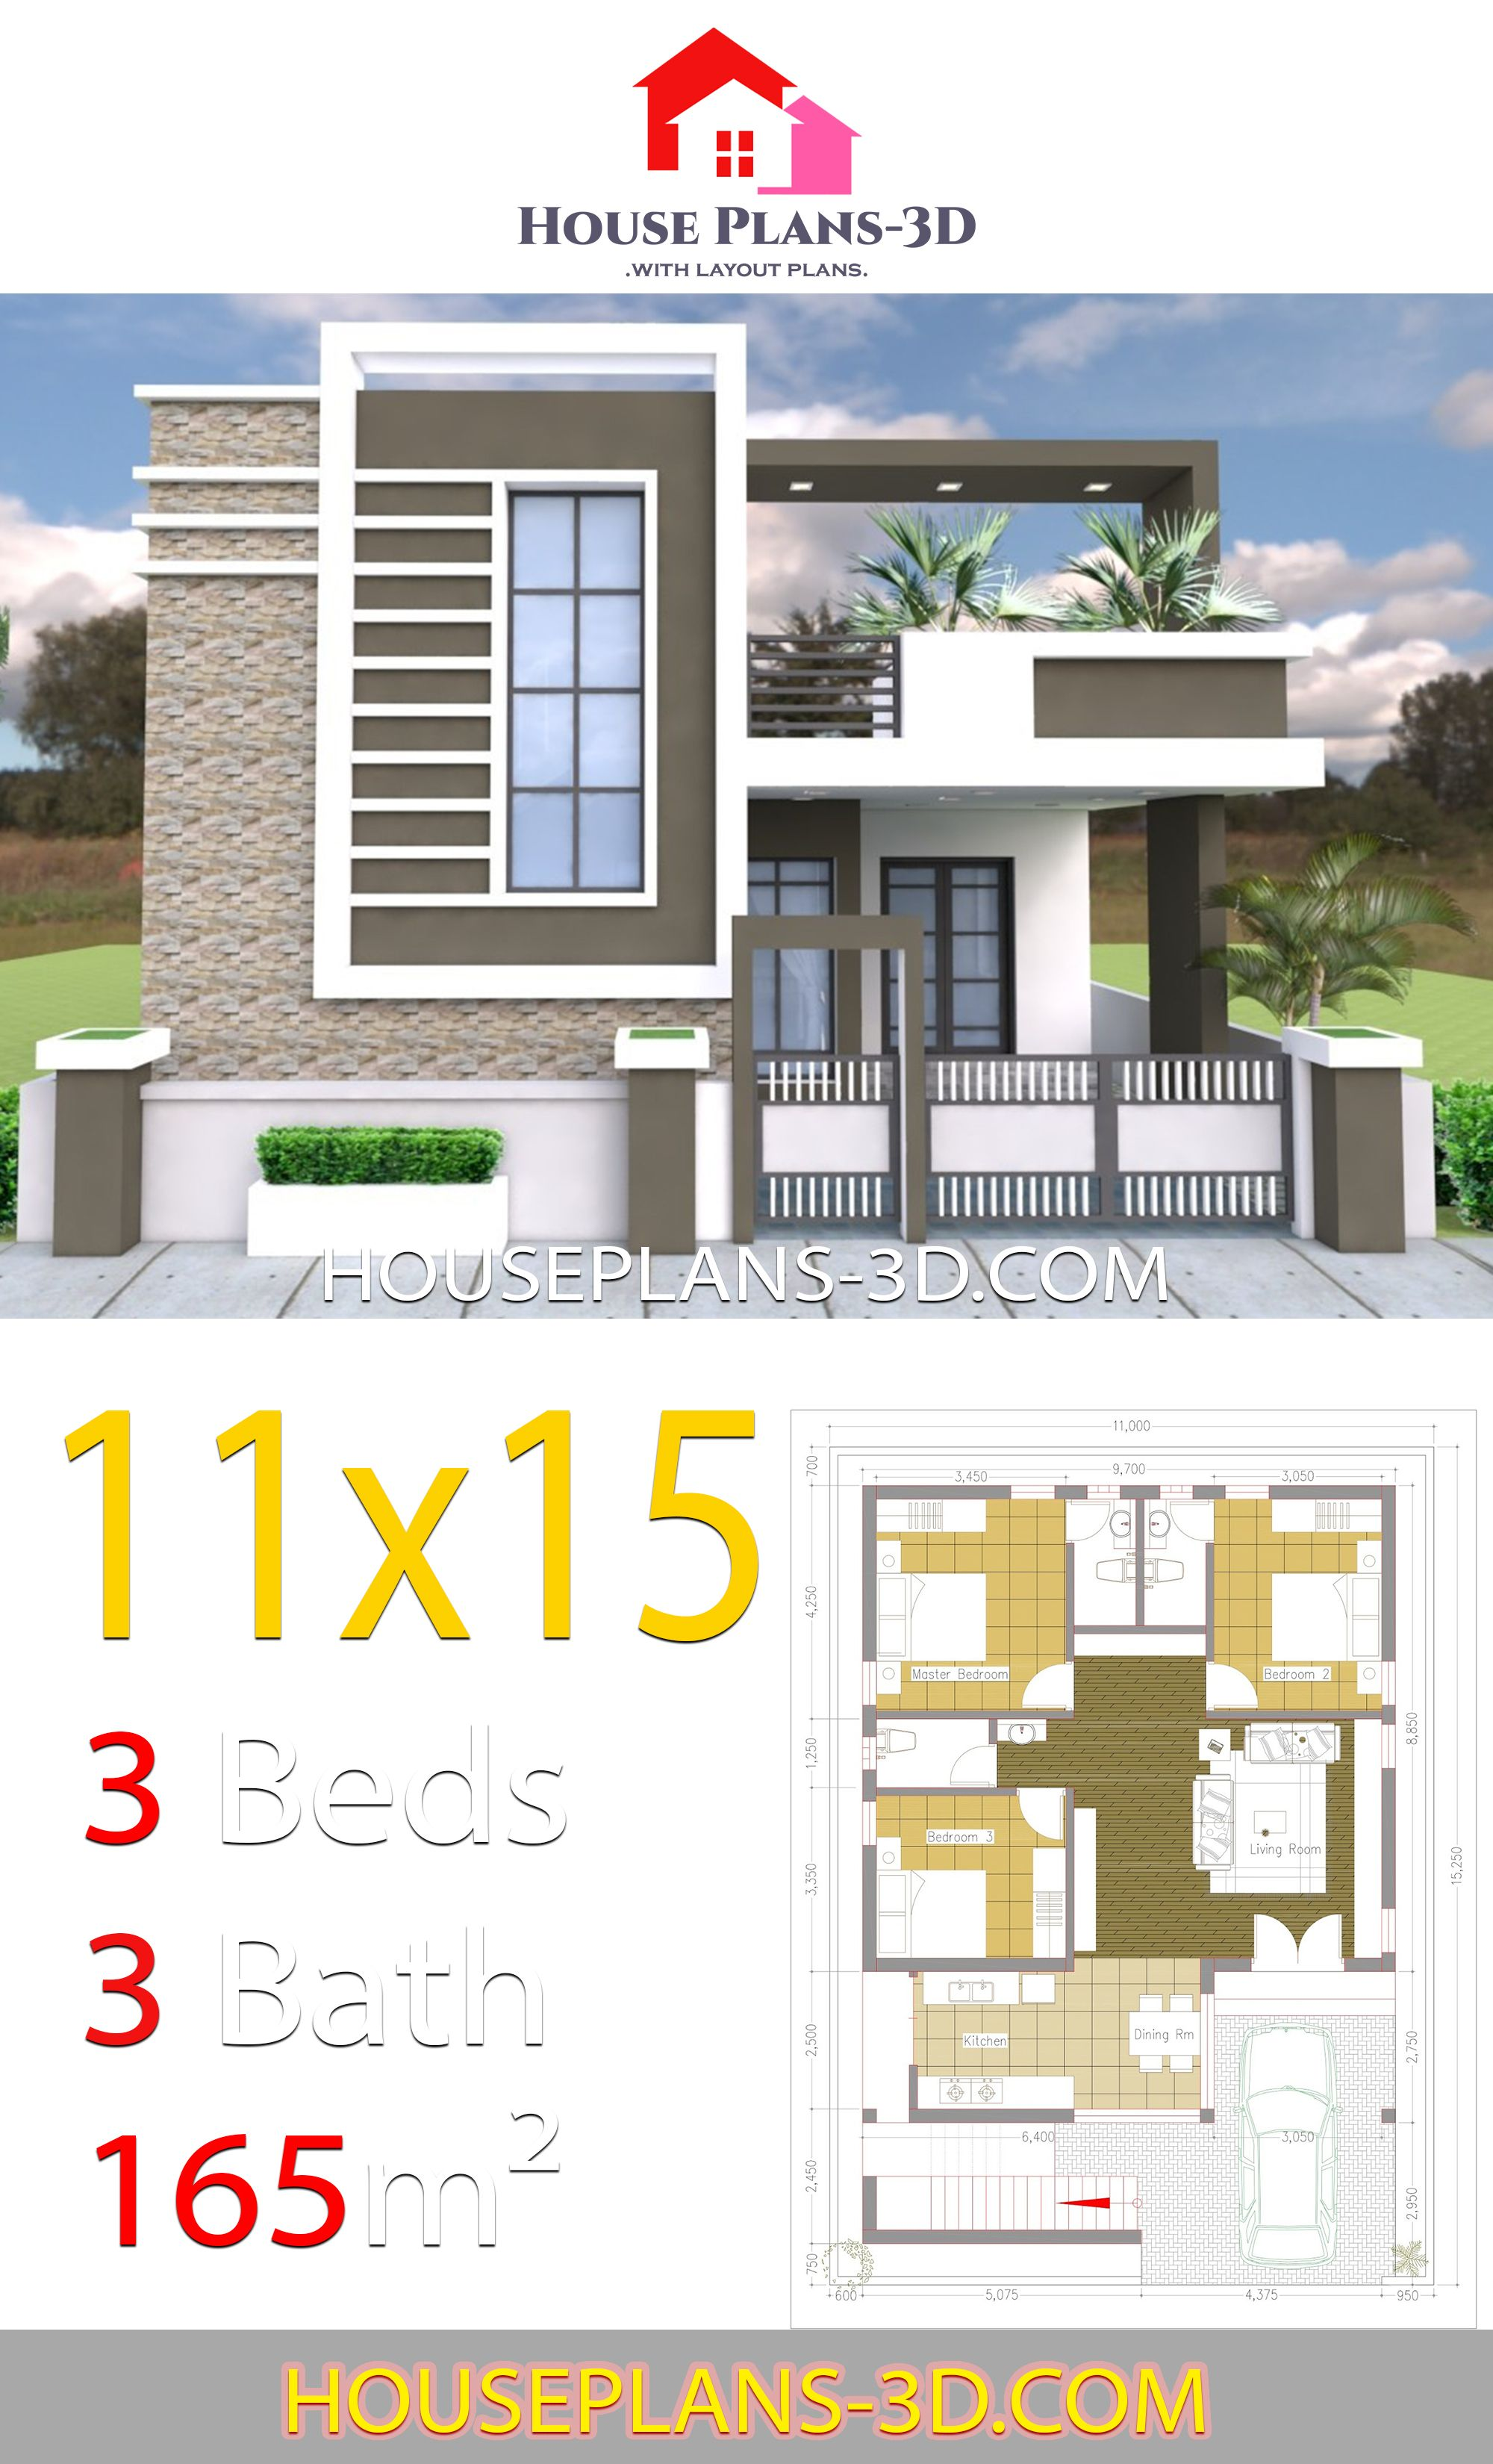 House Design 11x15 With 3 Bedrooms Terrace Roof House Plans 3d Small House Design Architecture House Outside Design Simple House Design